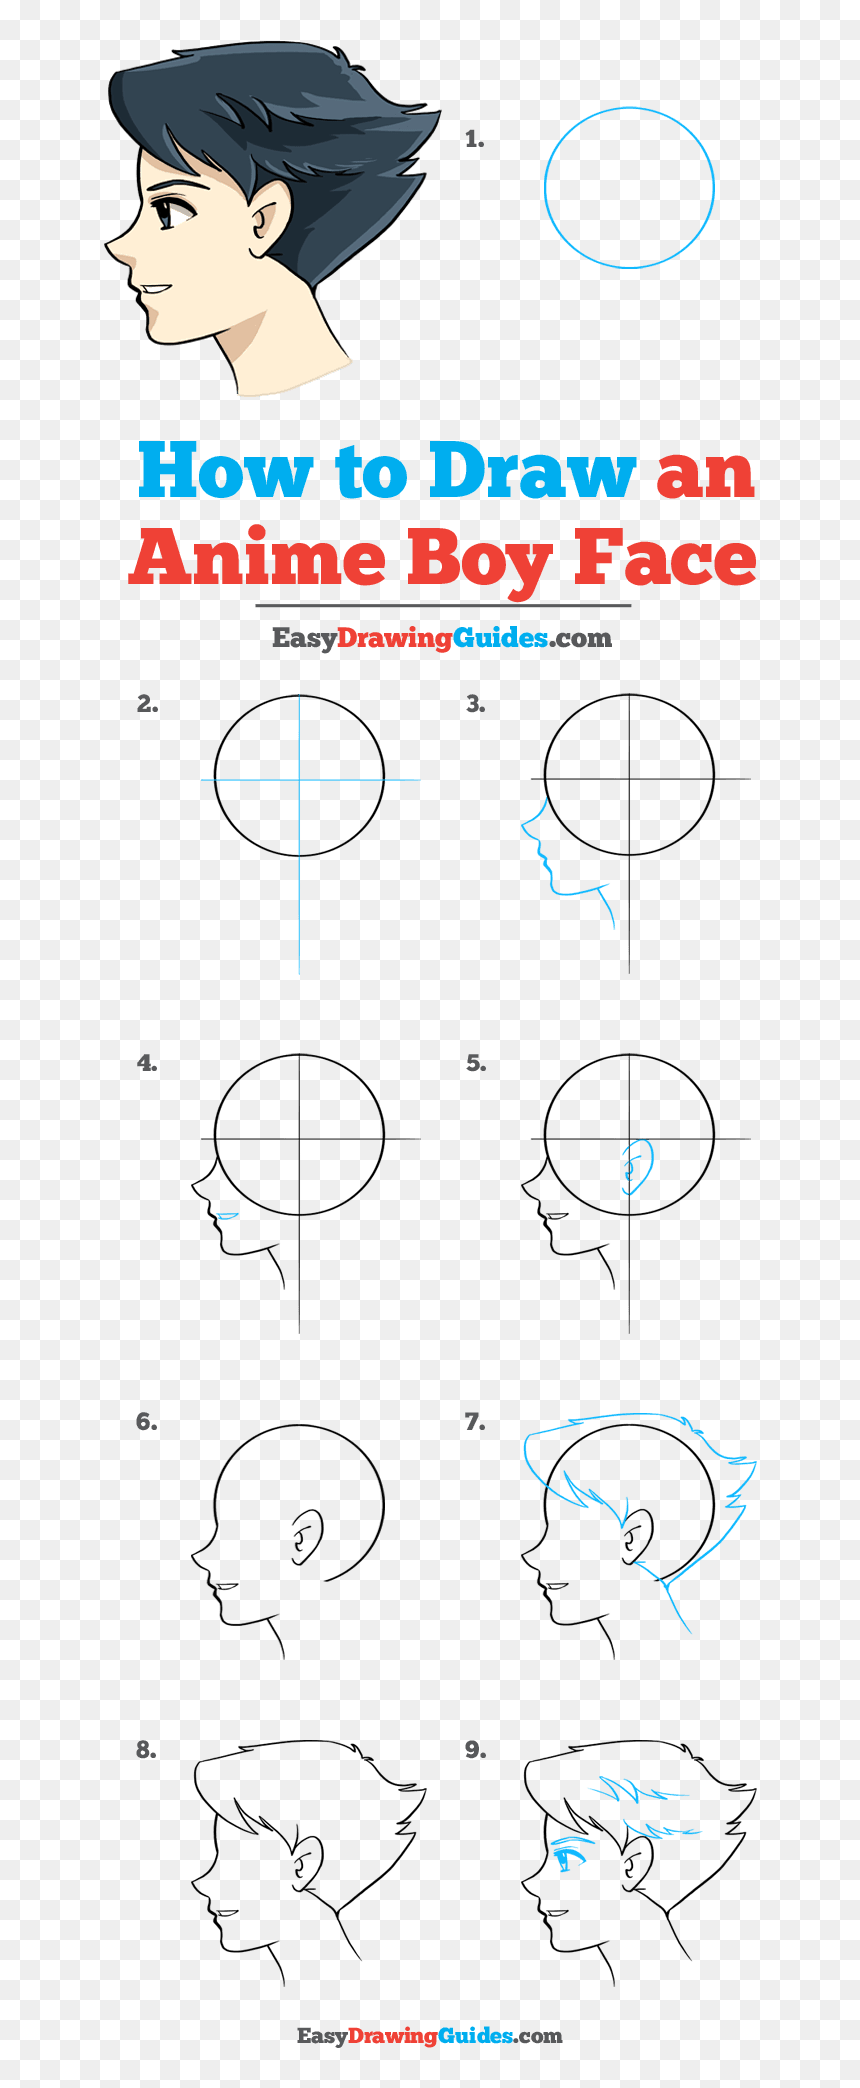 How To Draw Anime Boy Face Draw A Football Step By Step Hd Png